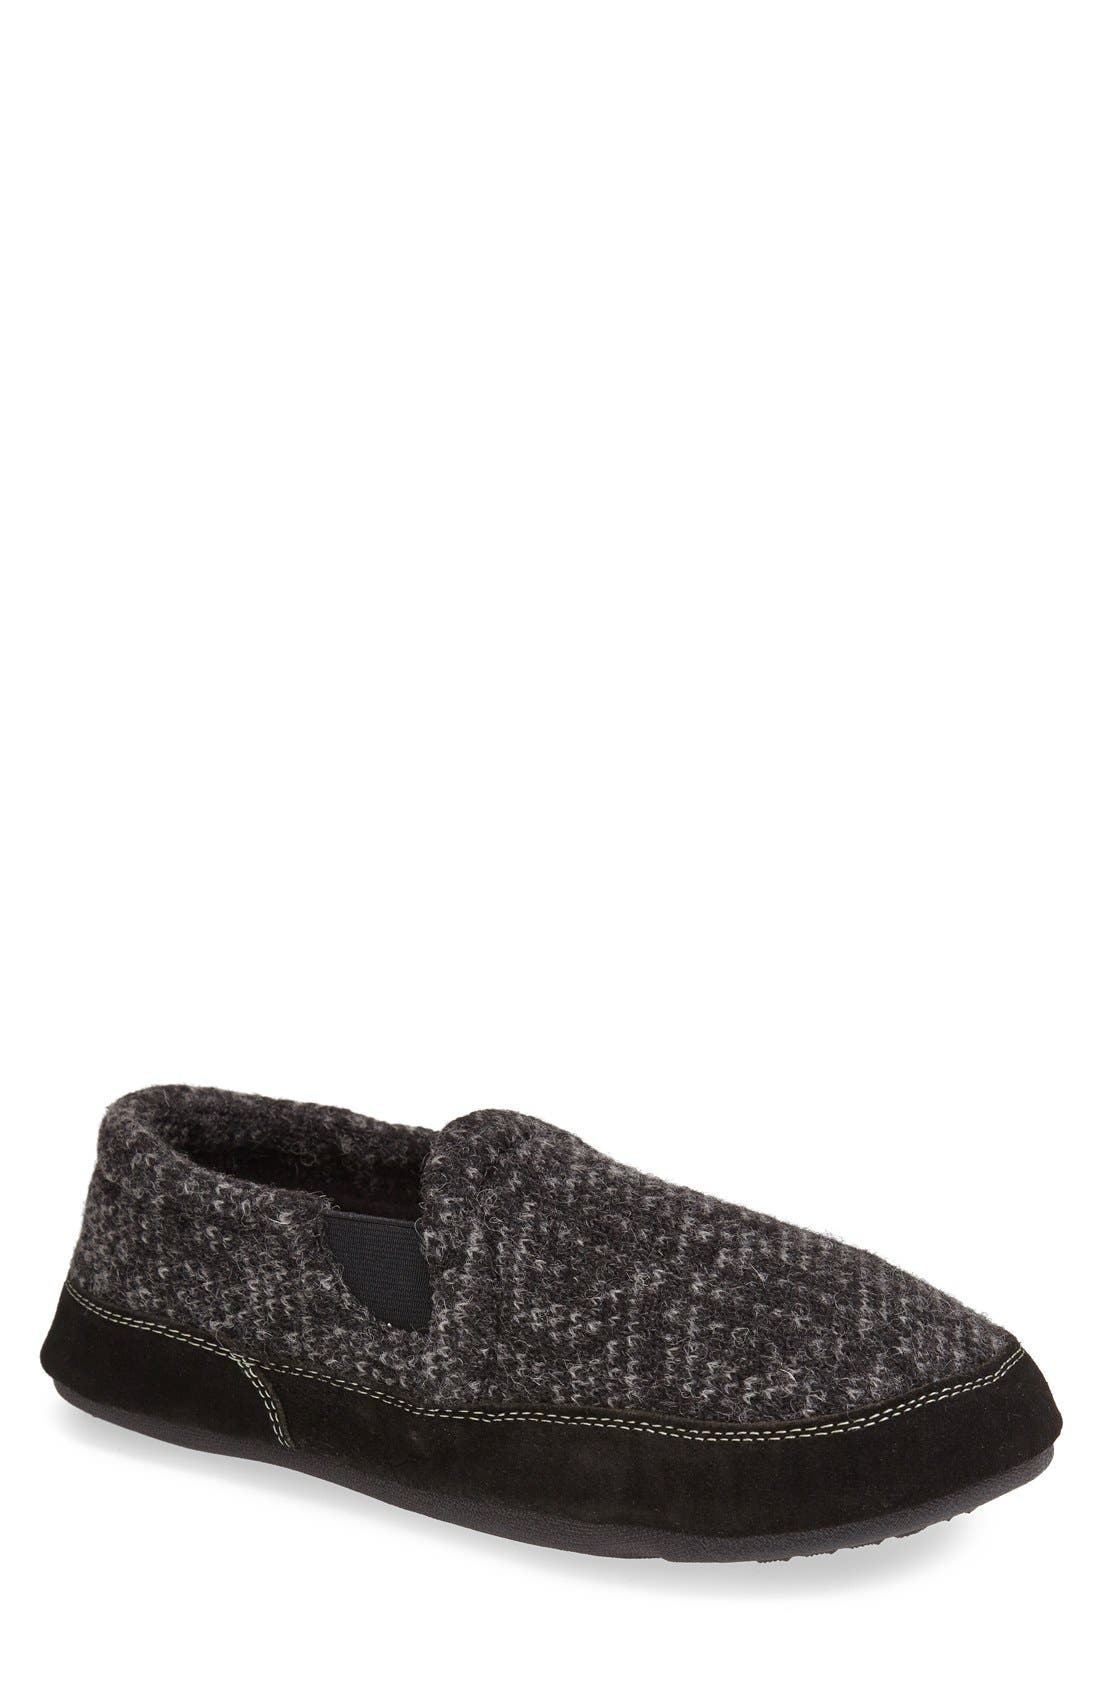 'Fave' Slipper,                         Main,                         color, CHARCOAL TWEED